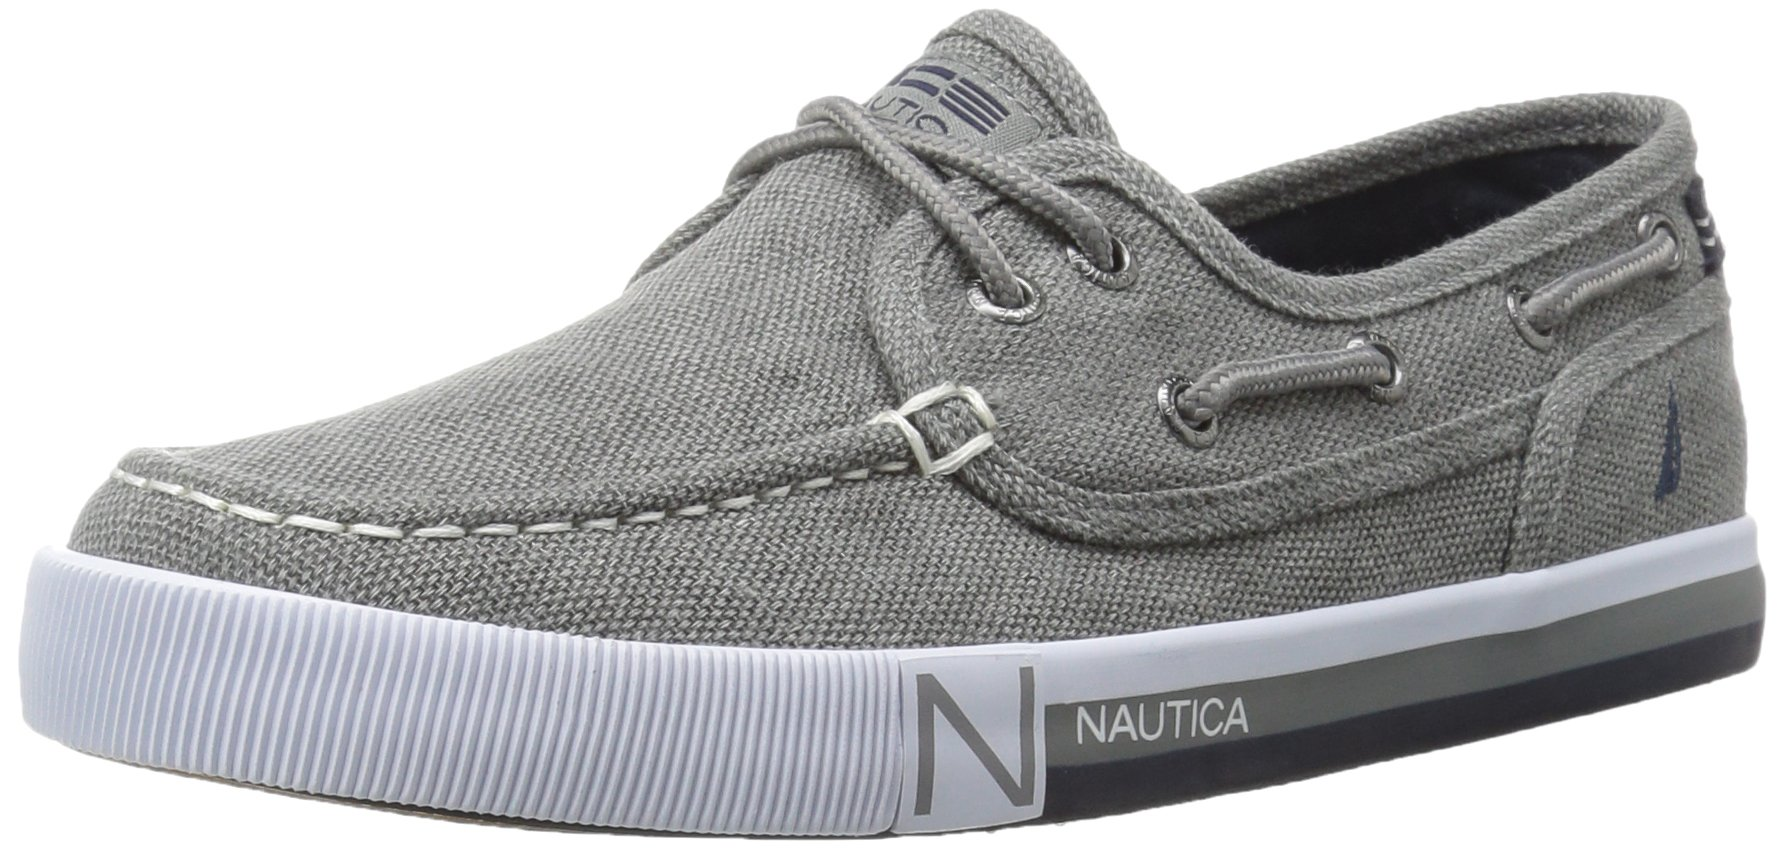 Nautica Boys' Spinnaker Boat Shoe, Grey Washed, 13 M US Little Kid by Nautica